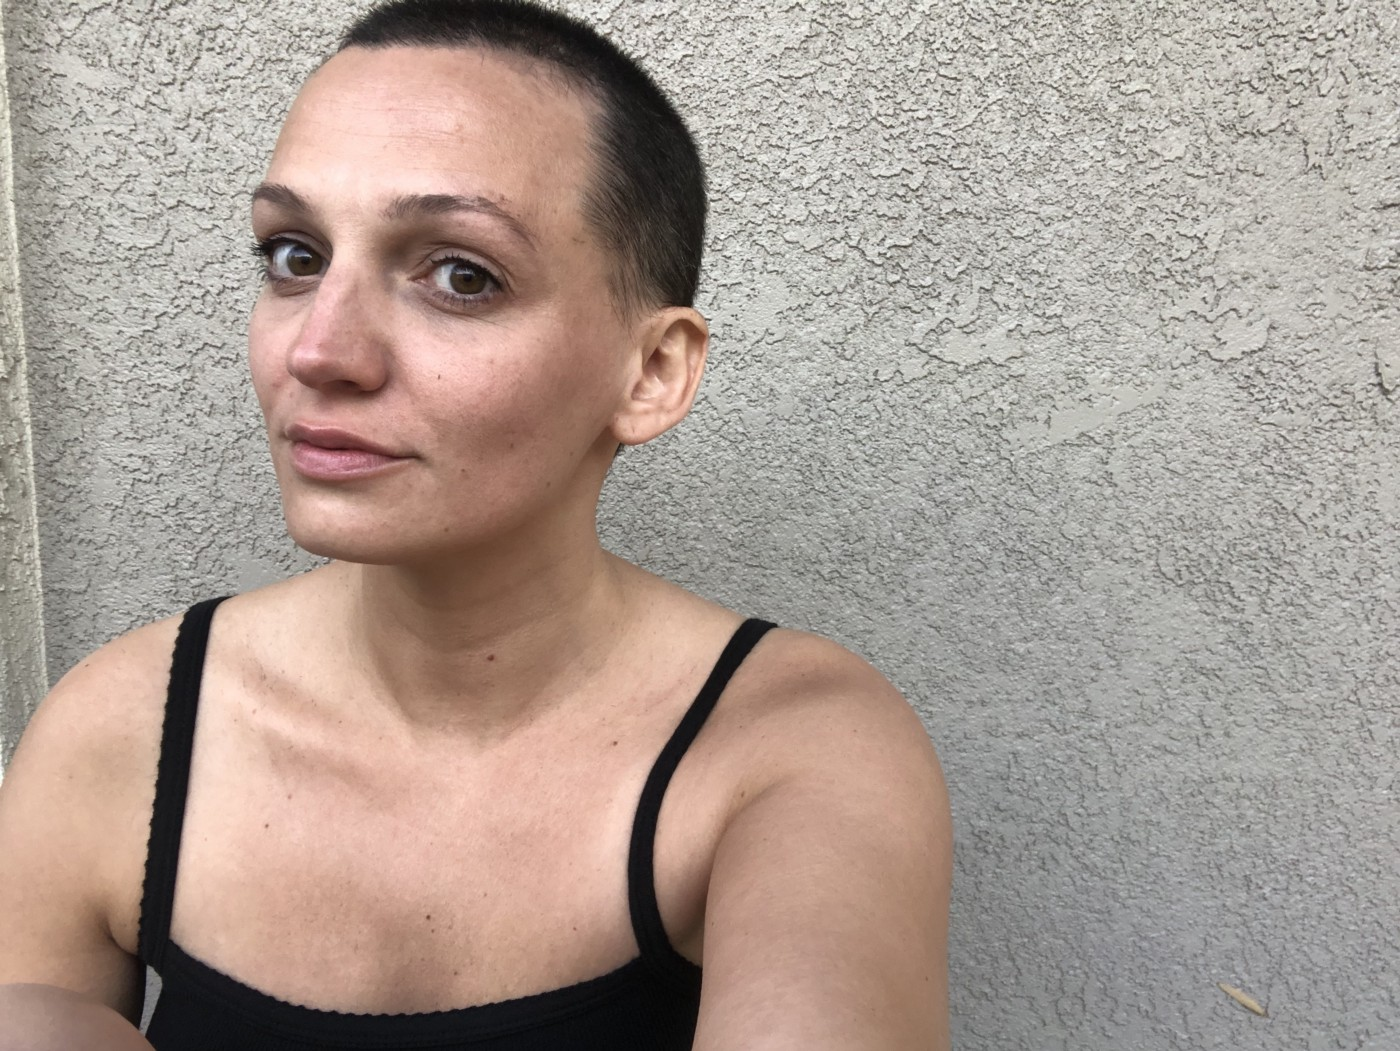 A selfie photo of the author with short cropped hair.